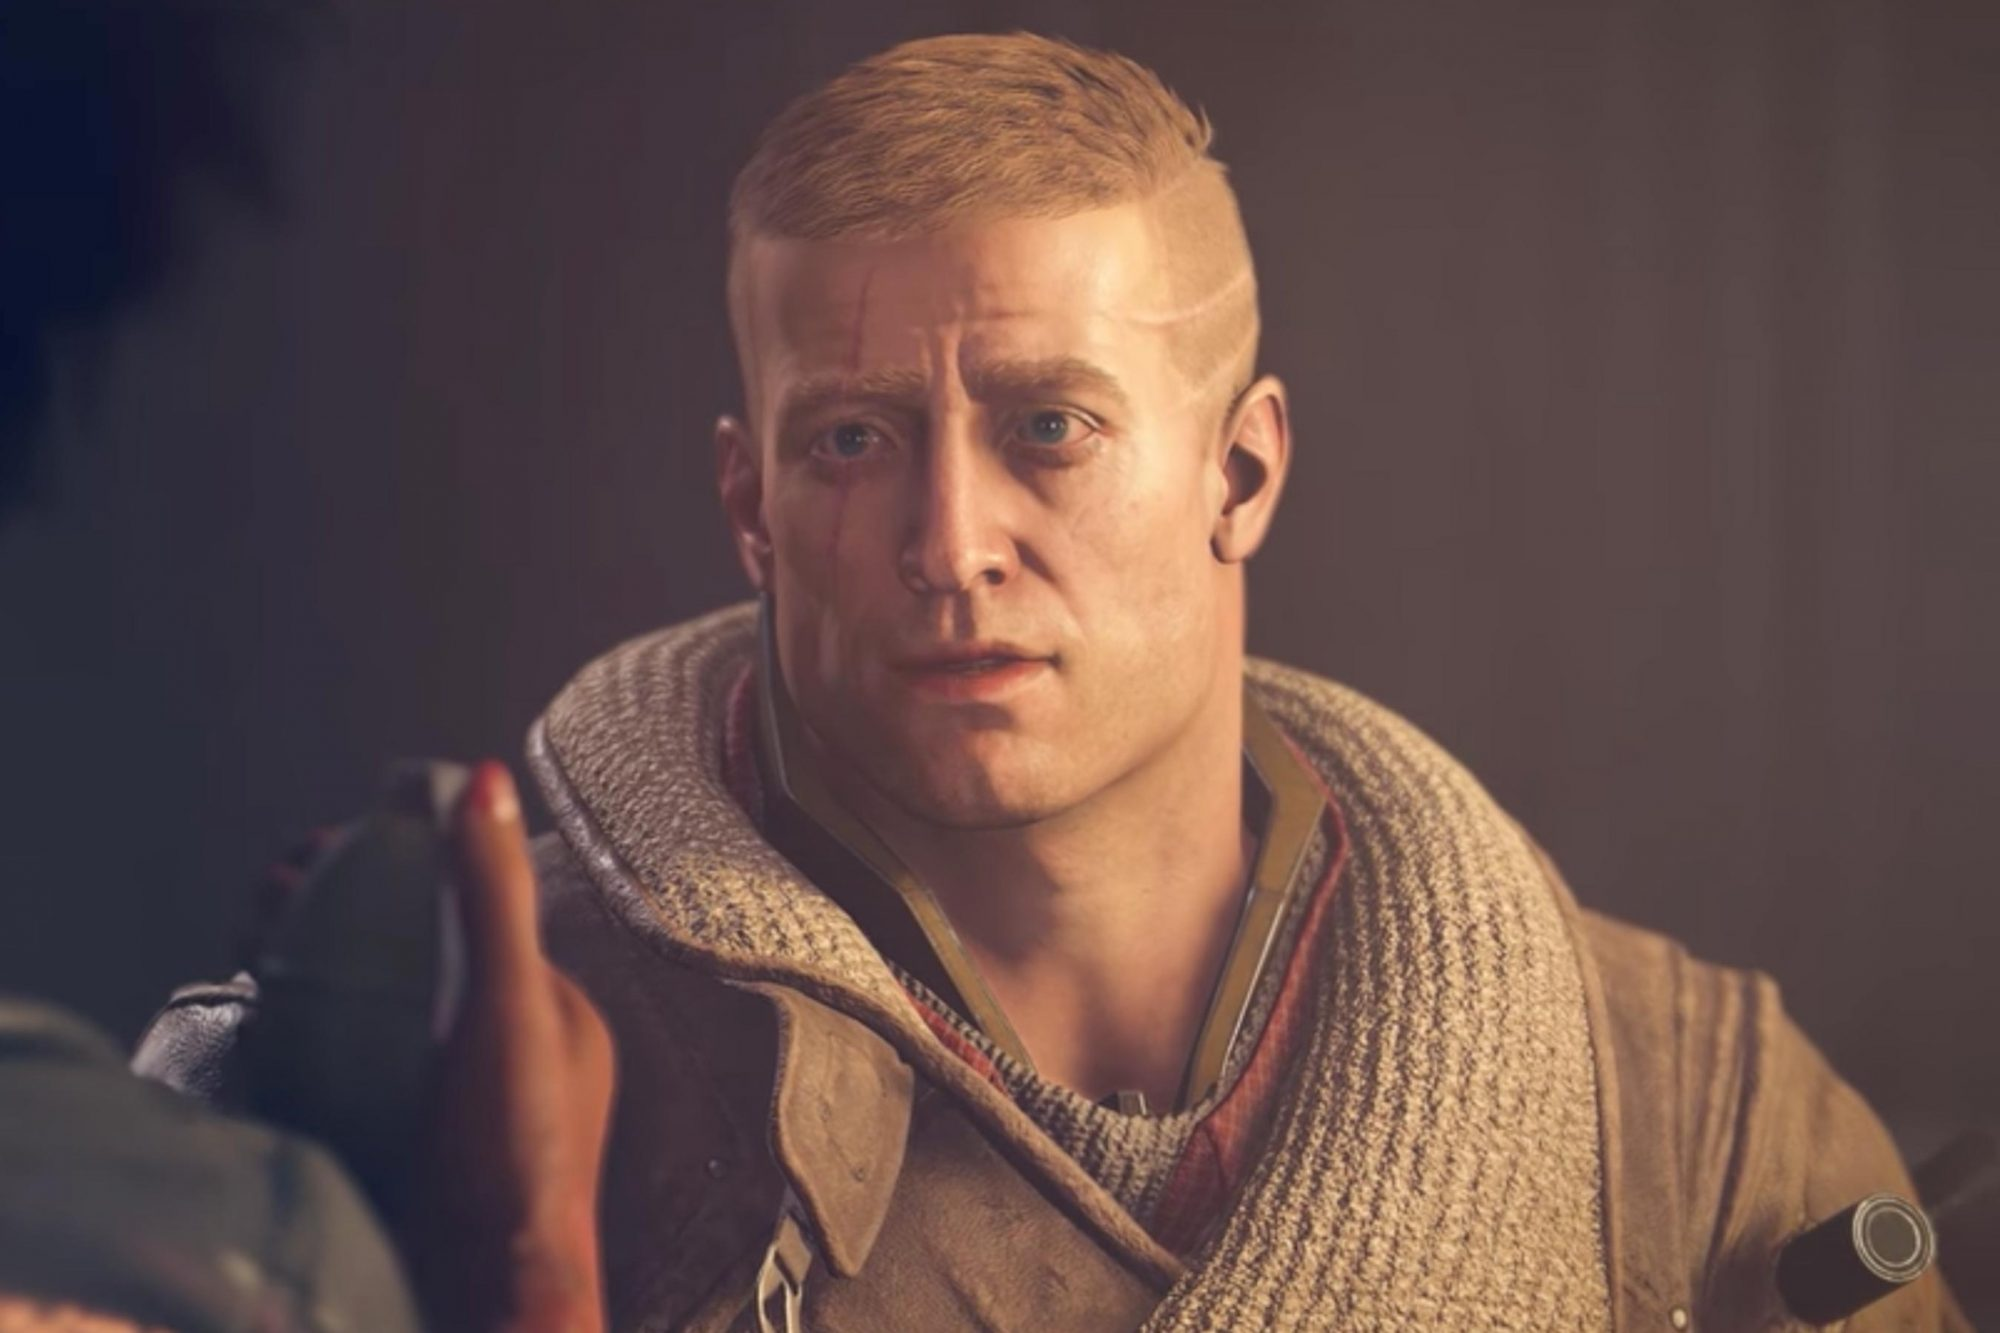 BEST                       10. Wolfenstein II: The New Colossus (multiplatform)